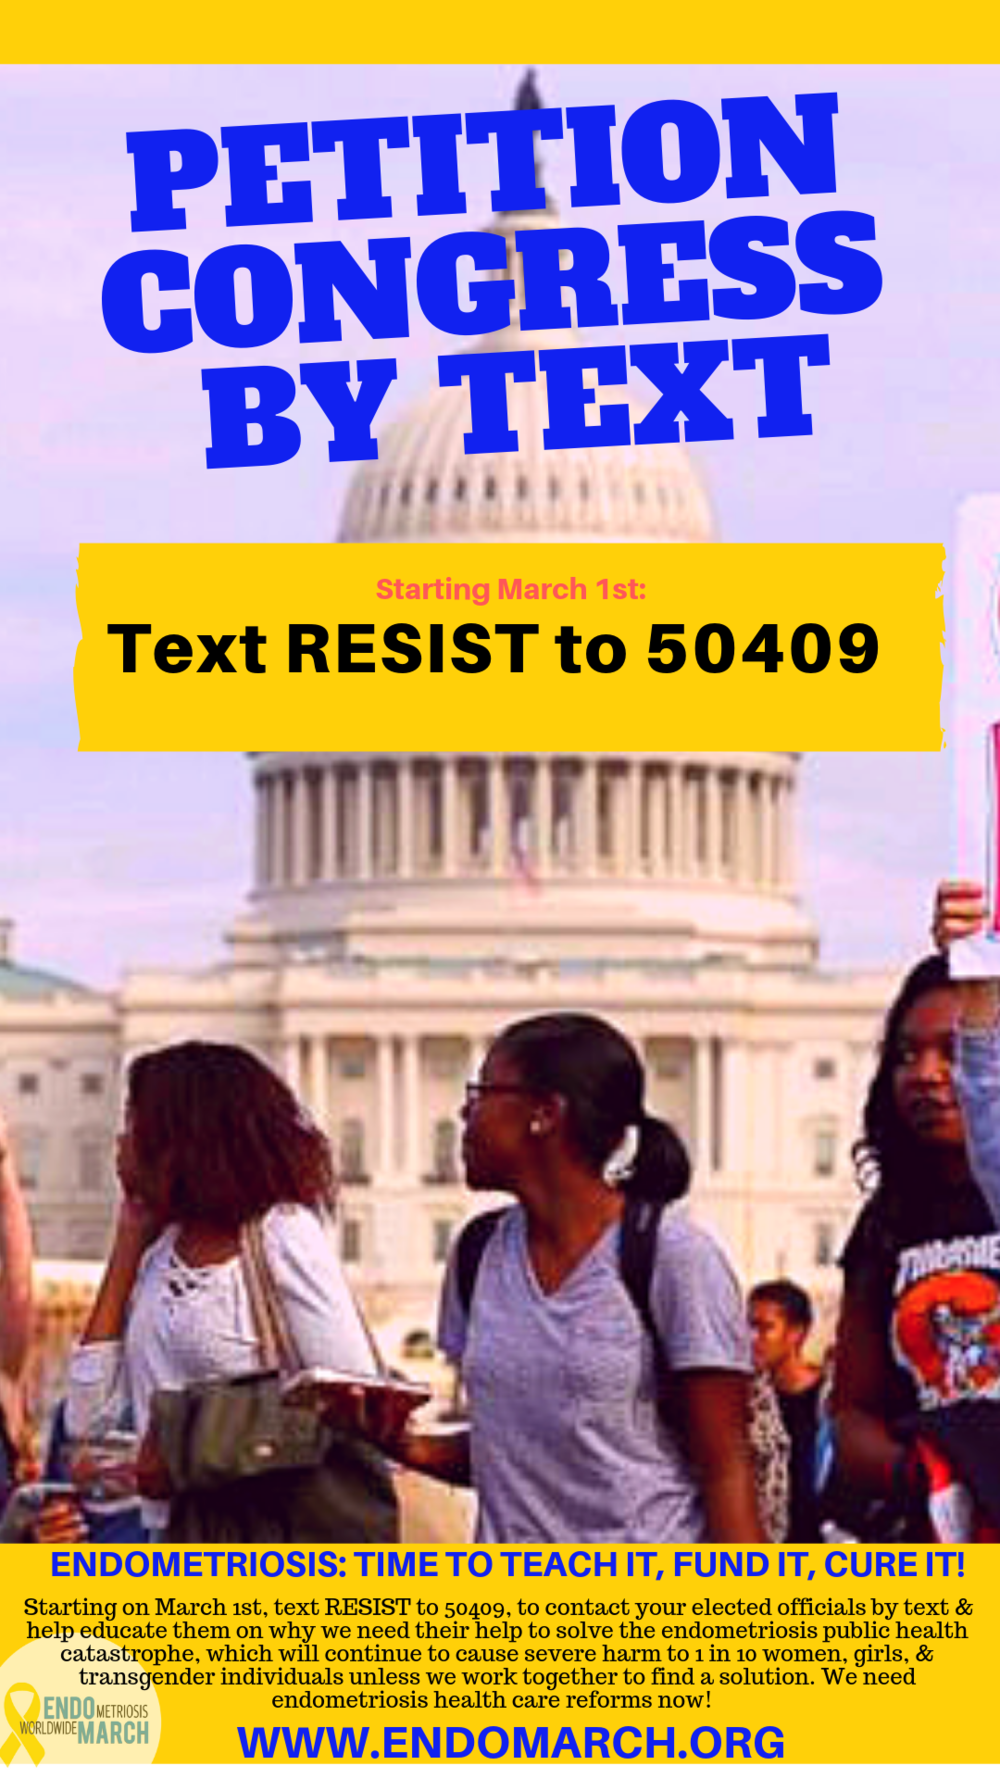 Petition Congress by Text - Text RESIST to 50409Starting March 1st, there will also be a 'Petition Congress by Text' campaign that will allow you to text your district's elected officials to help educate them on why we need their help to solve the endometriosis public health catastrophe, which will continue to cause severe harm to 1 in 10 women, girls, and transgender individuals, unless we work together to find a solution.